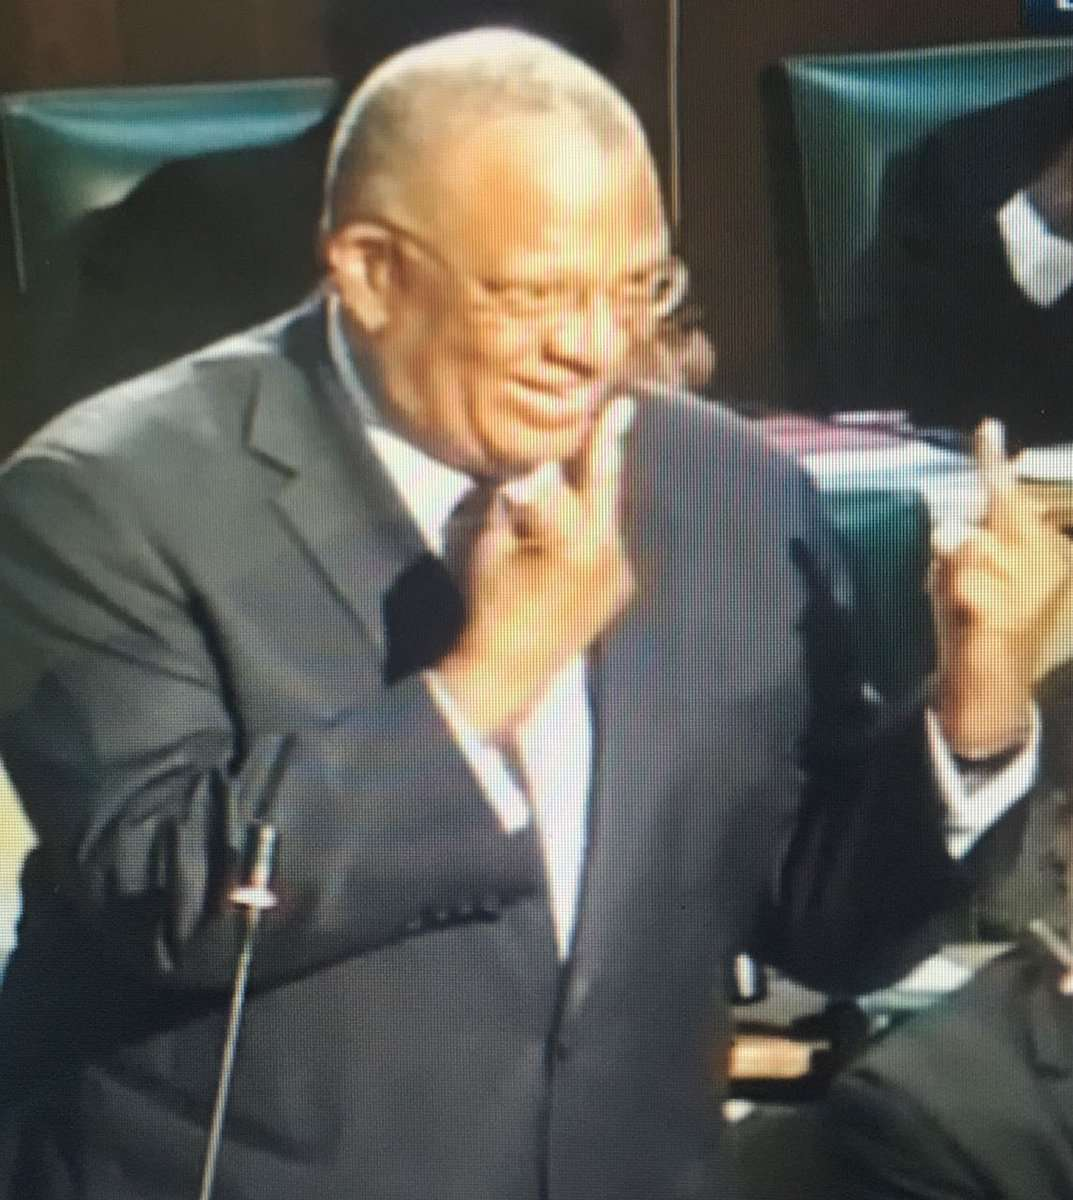 Opposition Leader Criticized for Making Apparently 'Vulgar Hand Gesture'